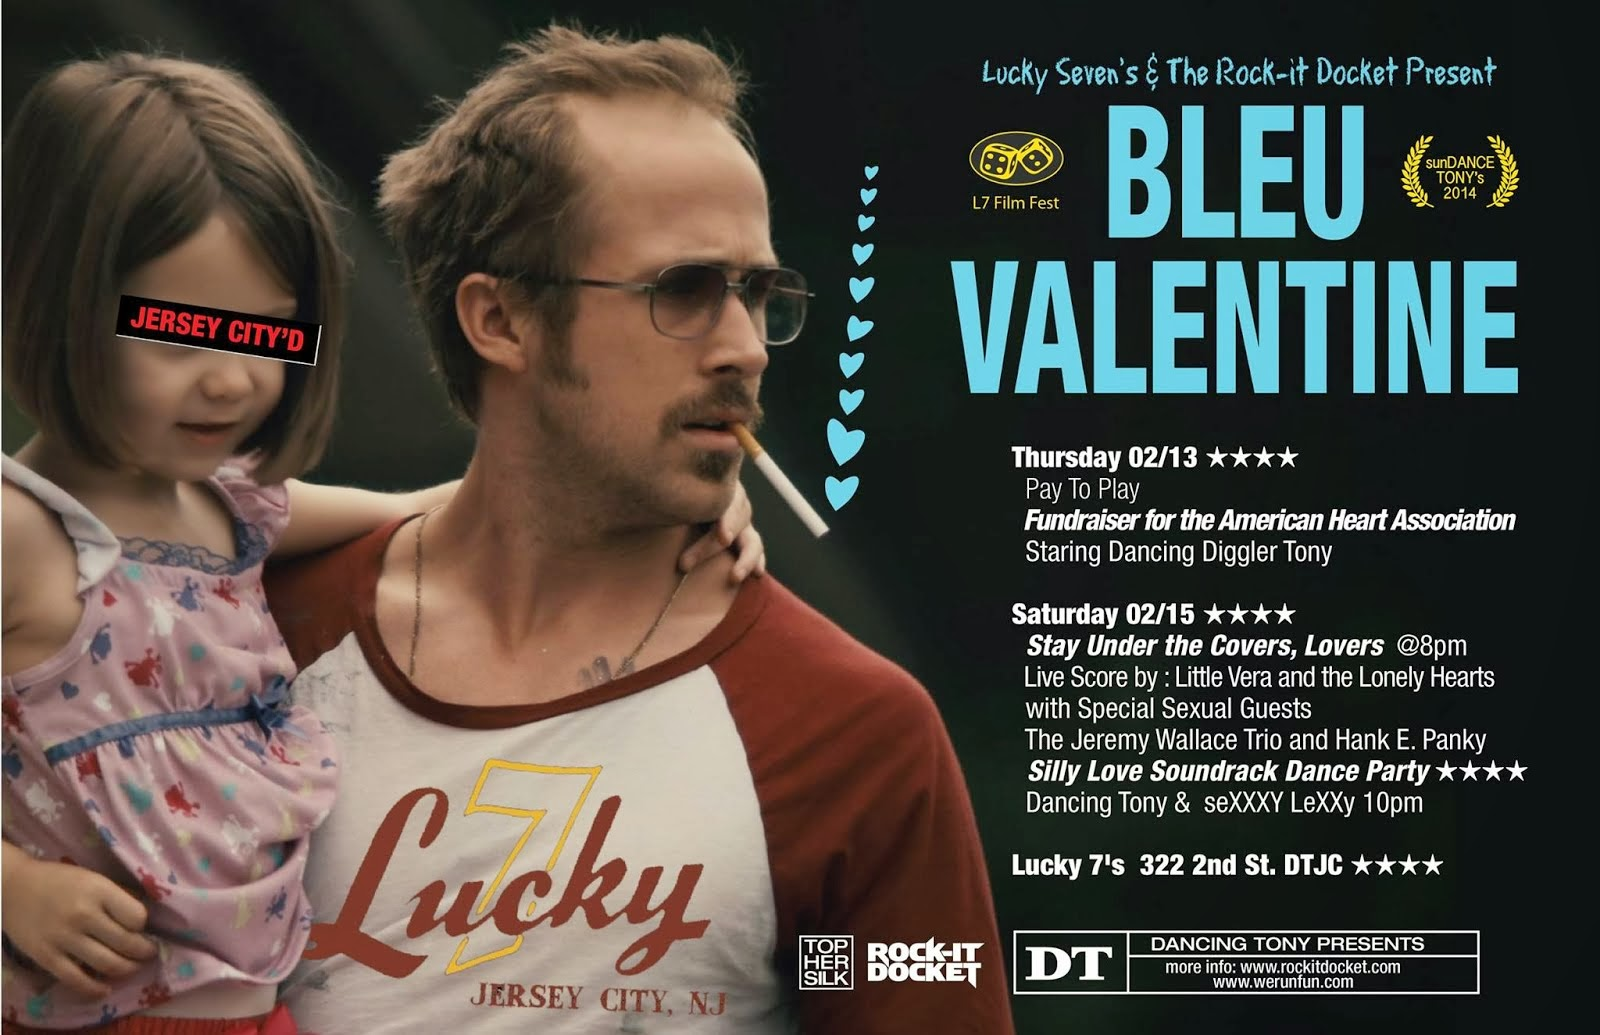 Bleu Valentine Weekend at Lucky 7's